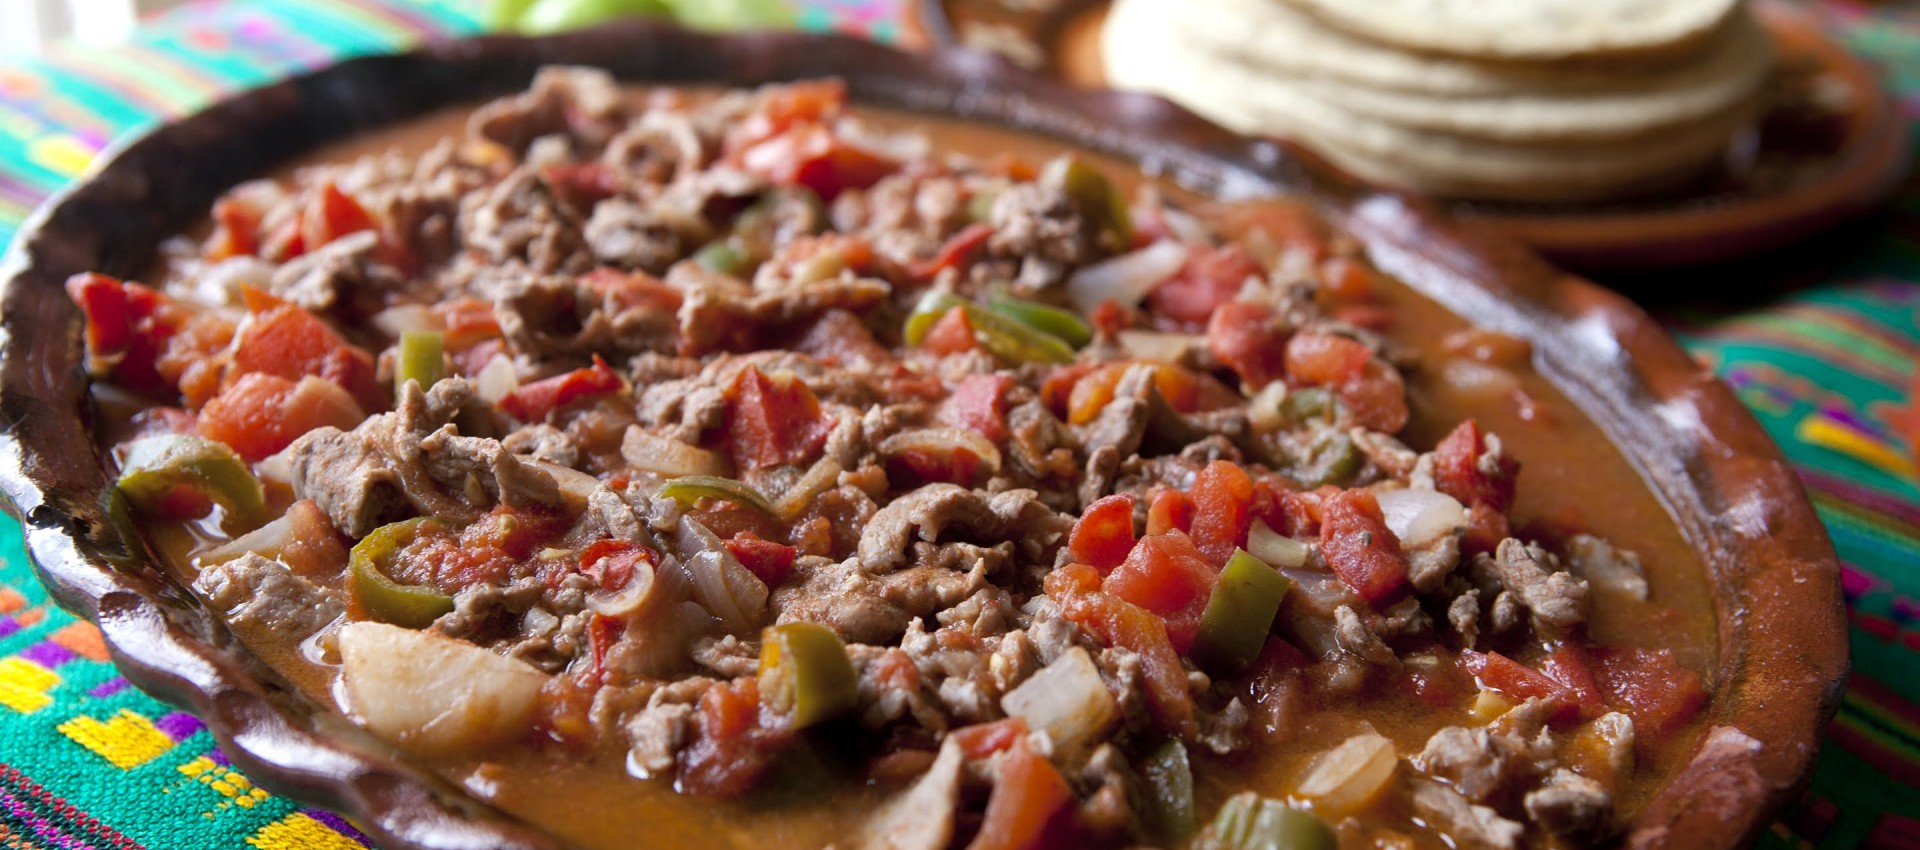 MEXICAN STYLE BEEF STEAK Image